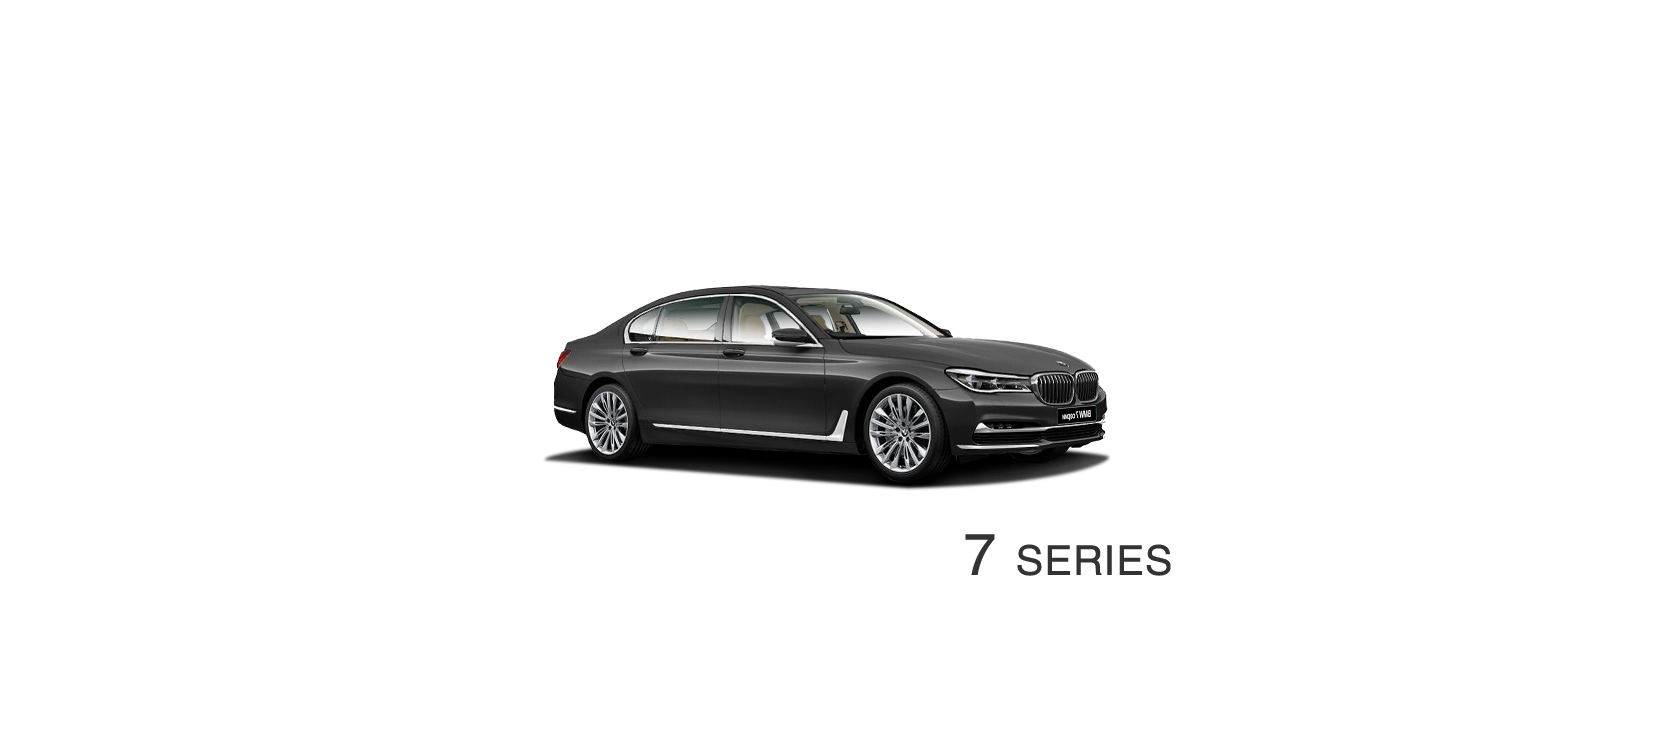 BMW 7 Series | Headlight lens plastic covers